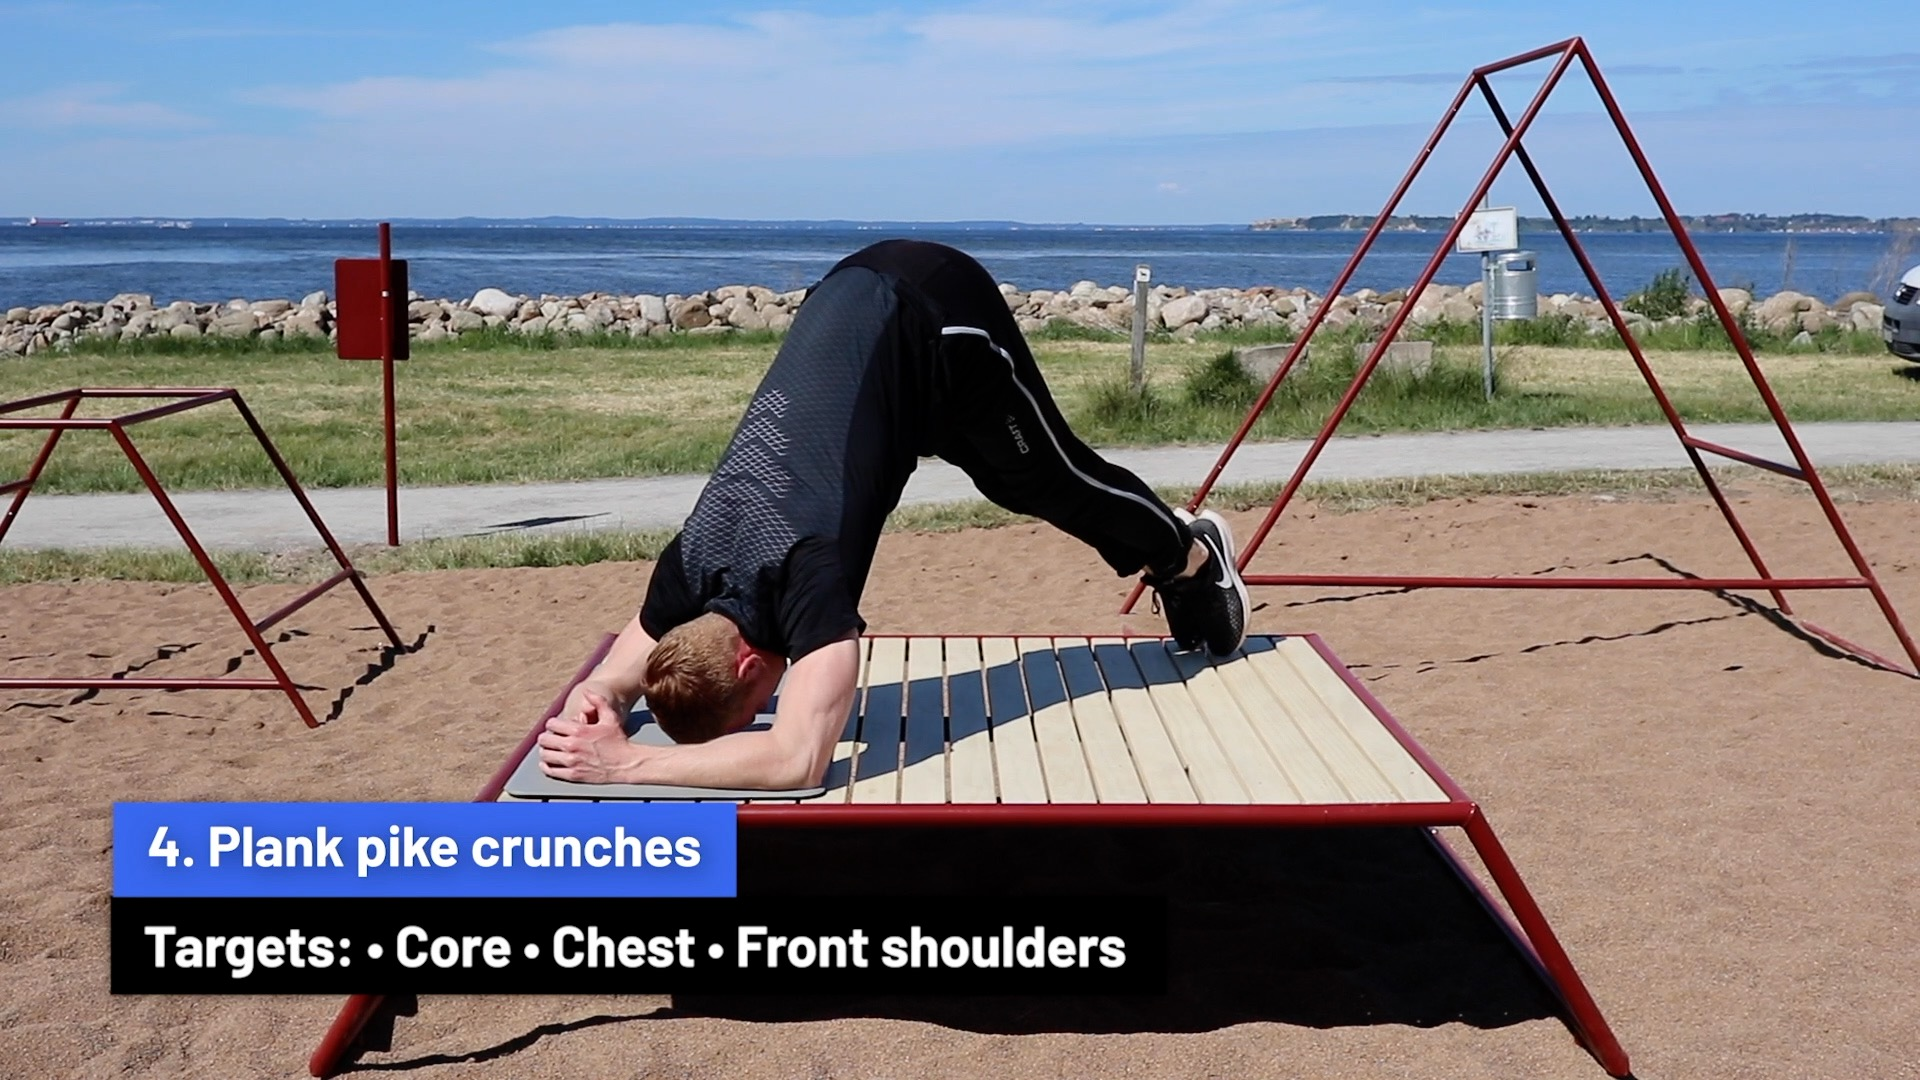 Plank pike crunches